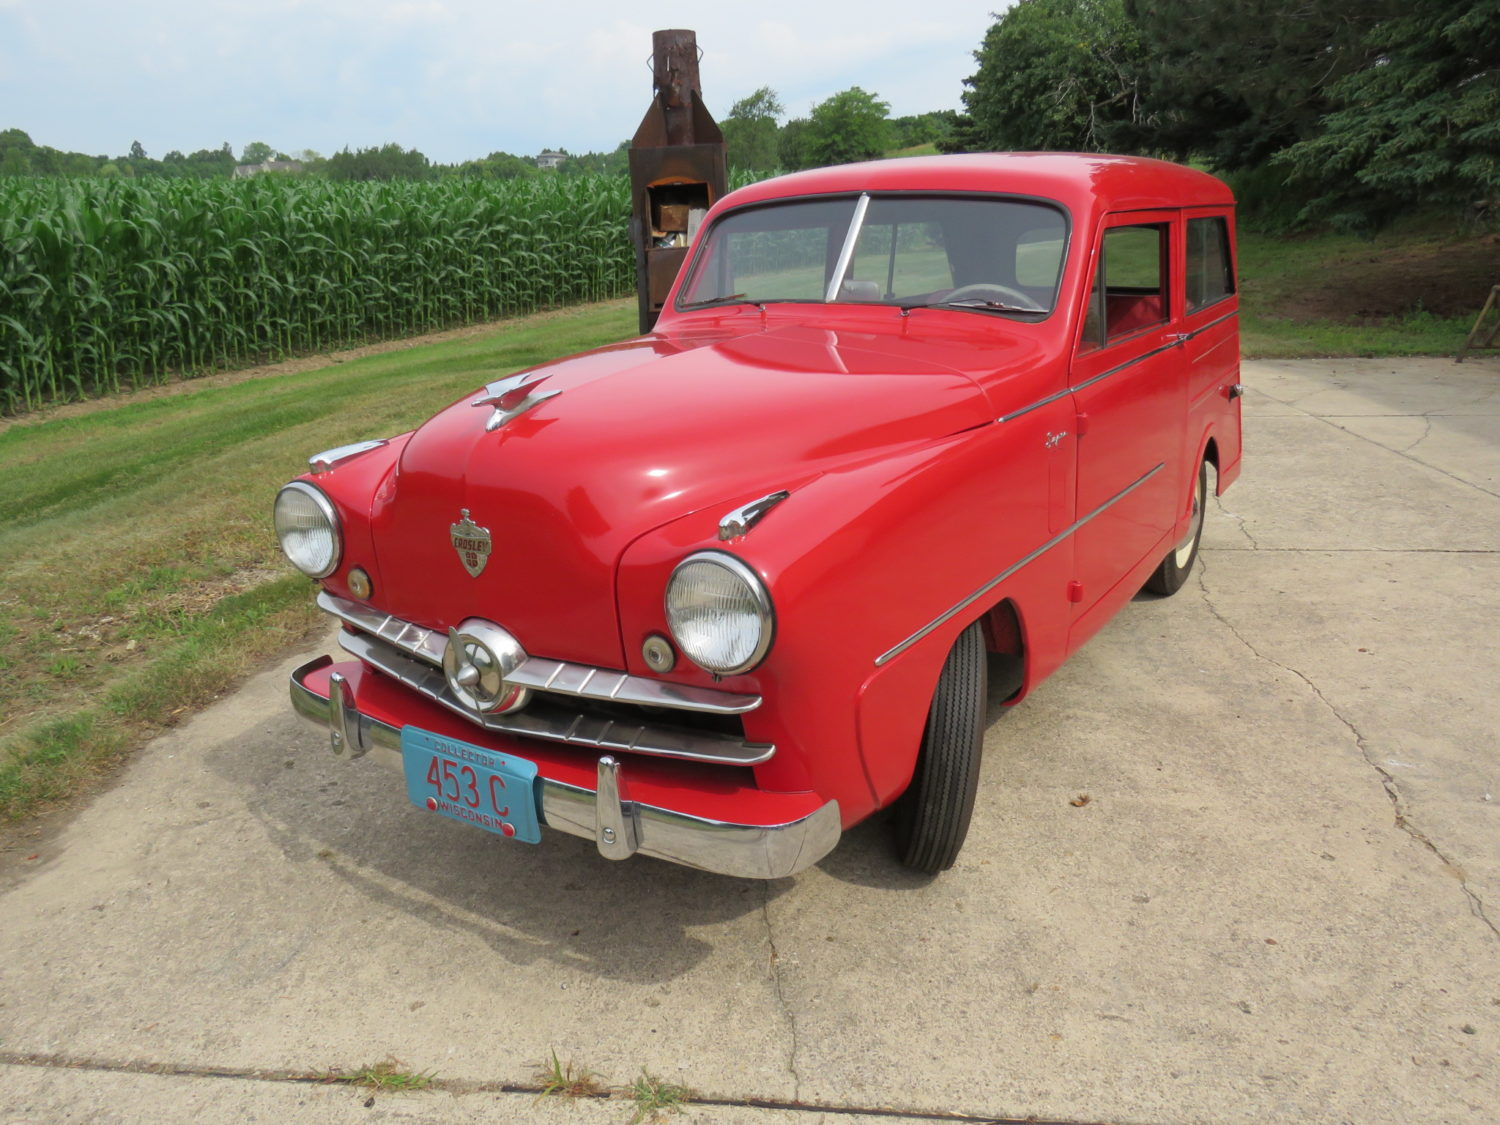 Collector Cars, Antique Tractors, Parts, Memorabilia & More.. The Del Beyer Estate Auction - image 6